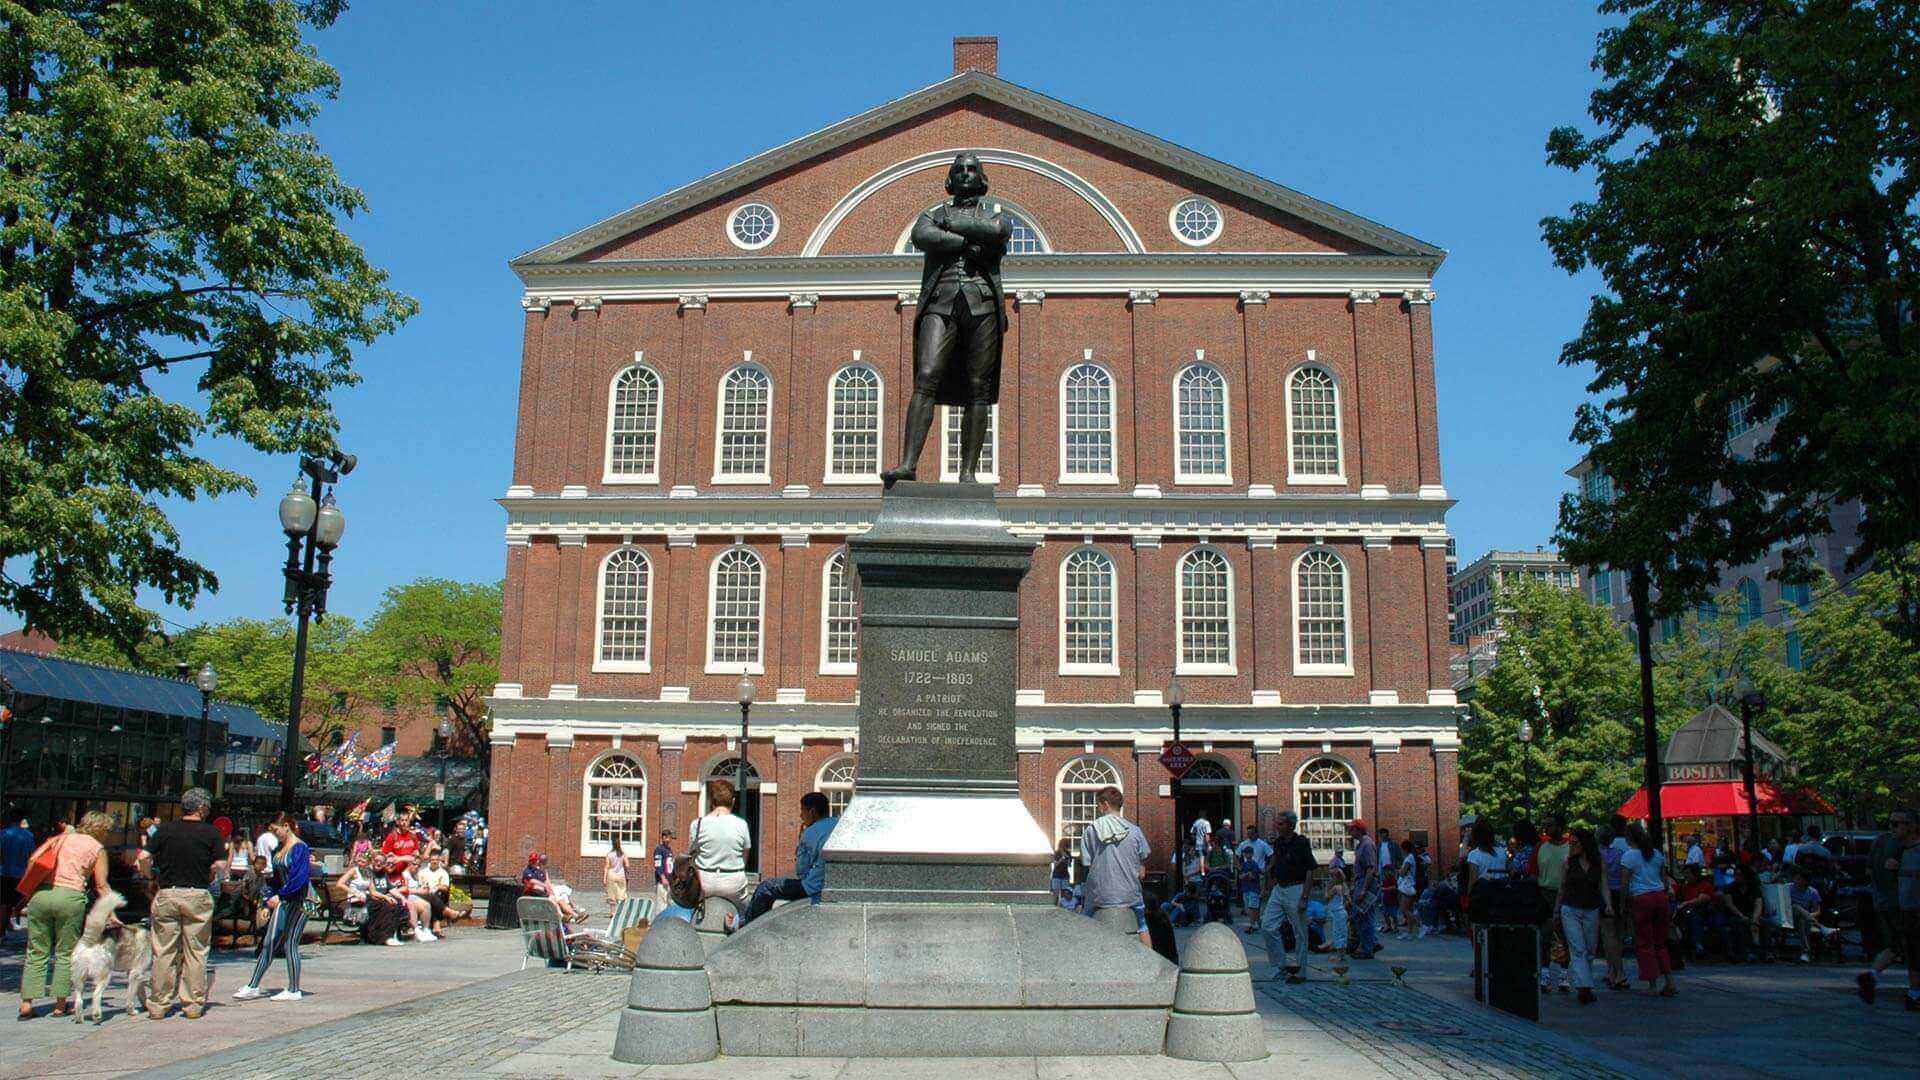 Front view of Faneuil Hall in Boston